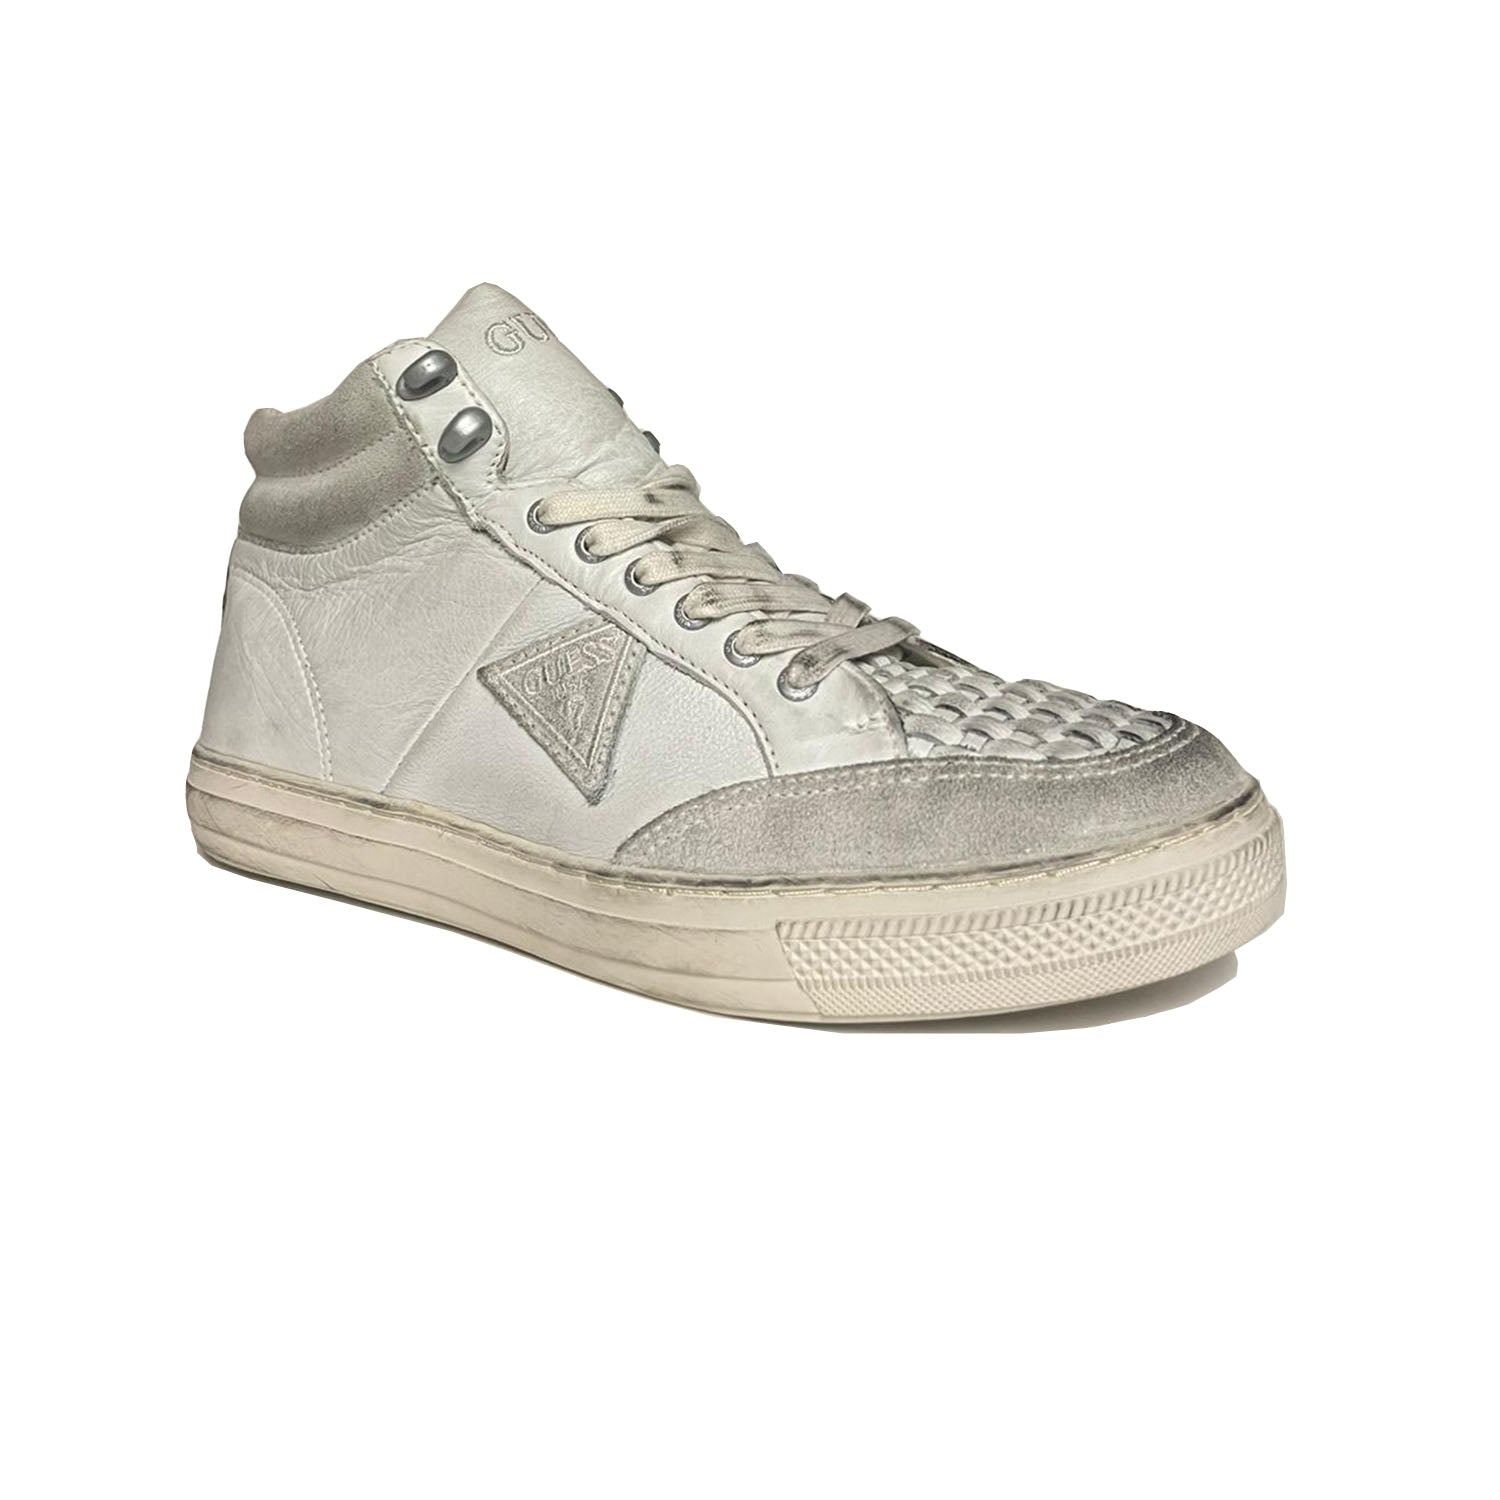 Guess Hunter Embroidered Patch Logo High Top Trainer